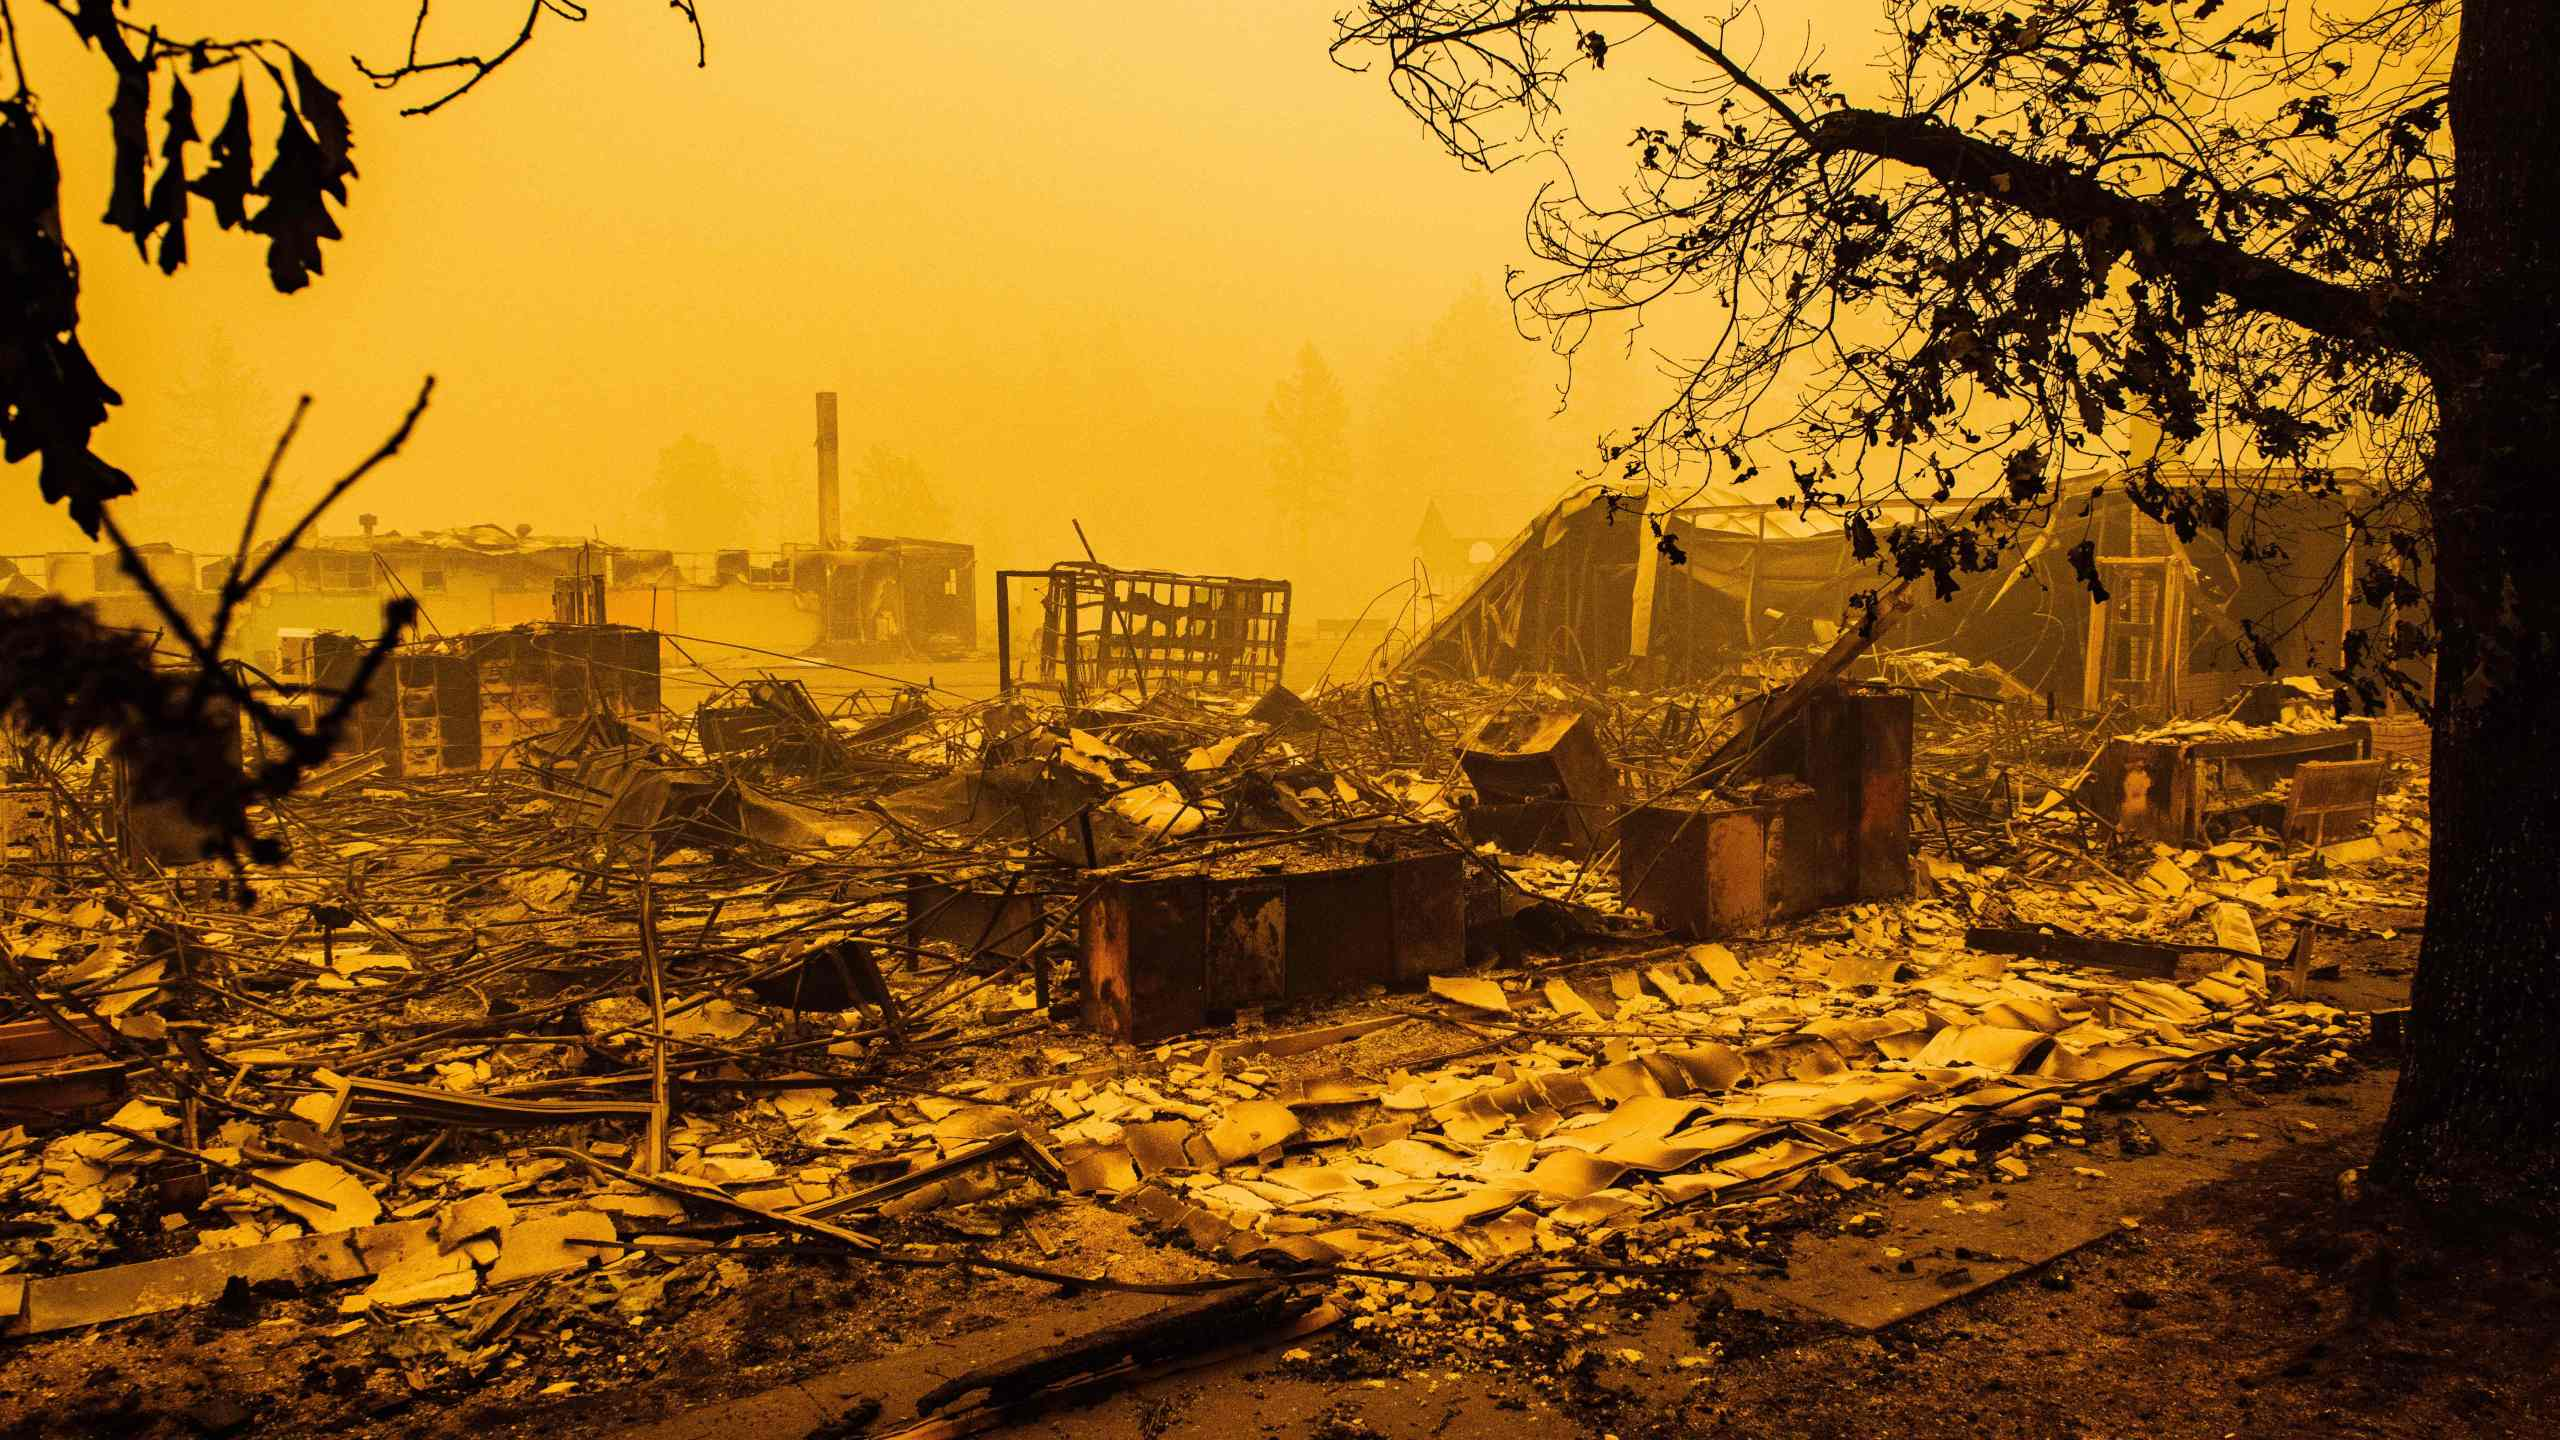 The charred remains of the Gates Elementary School, which was being used as a staging ground by firefighters, are seen after the passage of the Santiam Fire in Gates, Oregon, on Sept. 10, 2020. (Kathryn Elsesser / AFP / Getty Images)